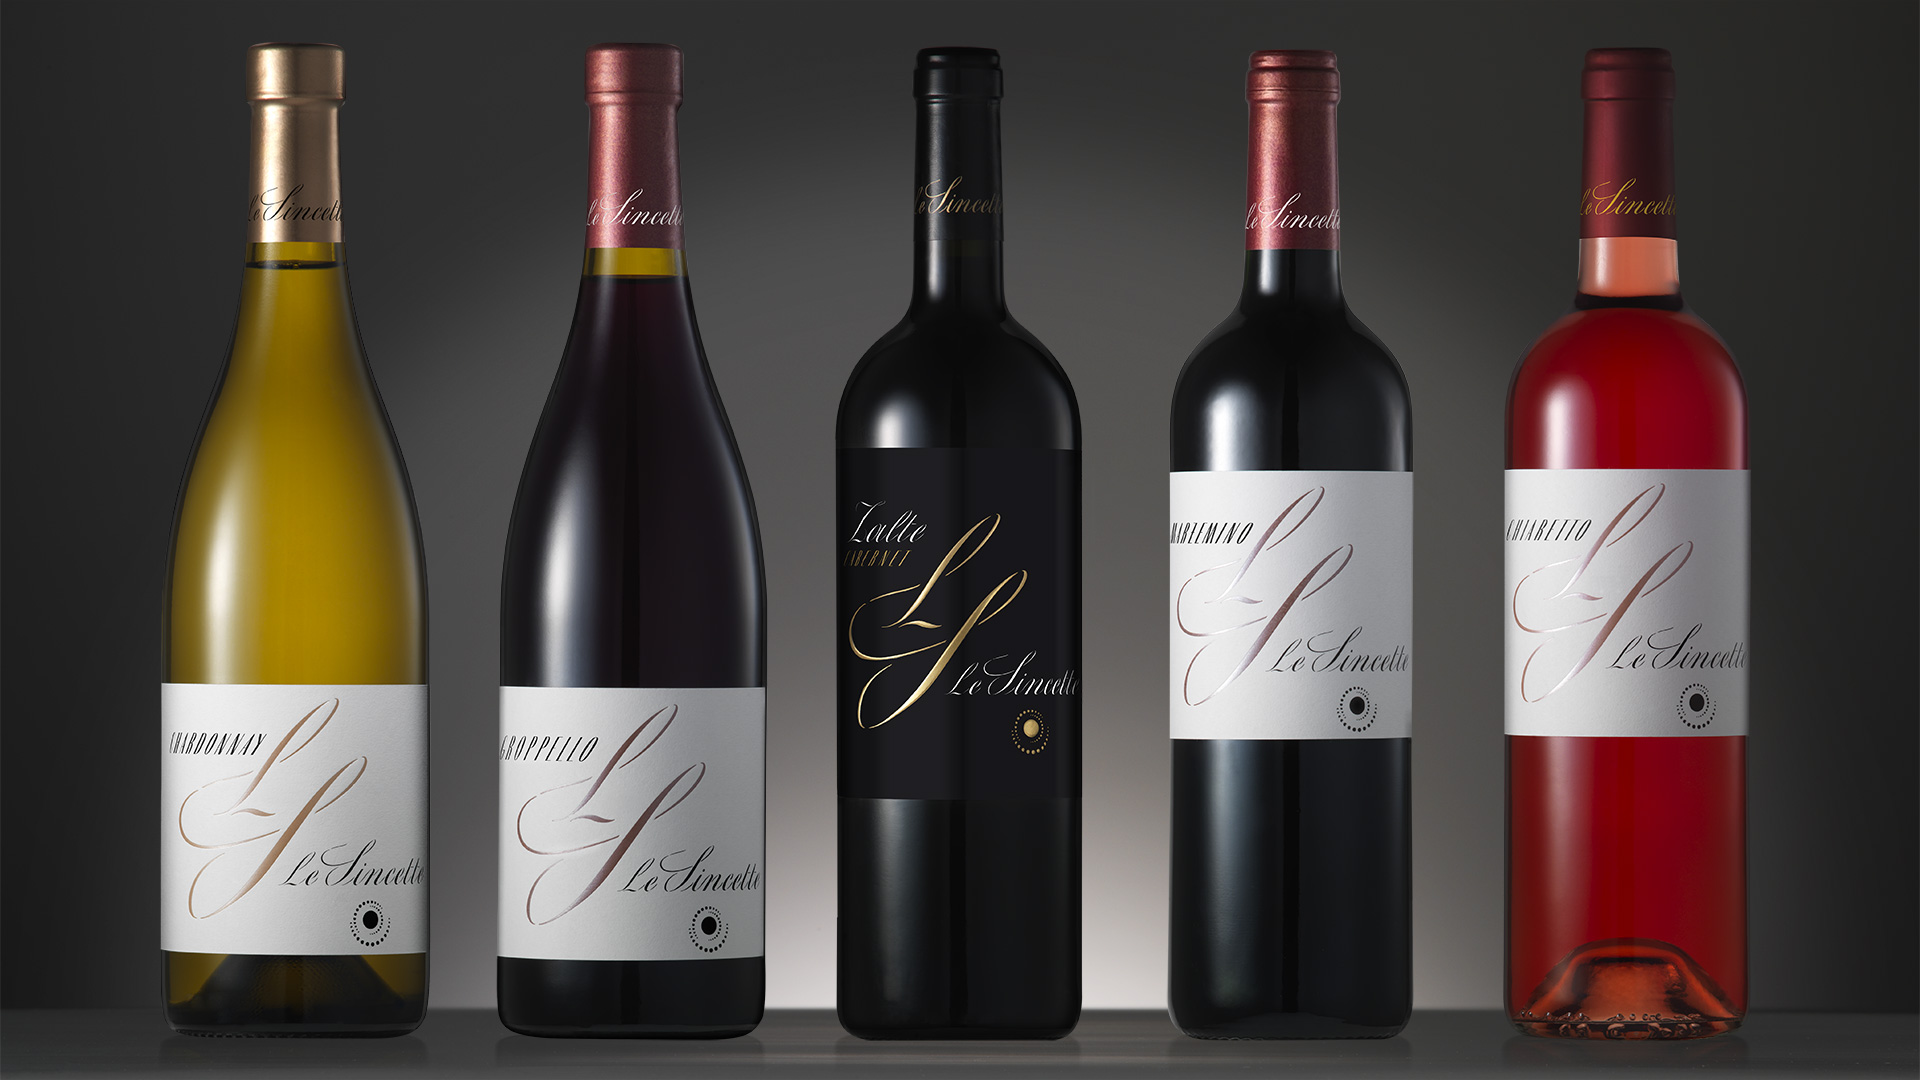 Le Sincette linea vino global design